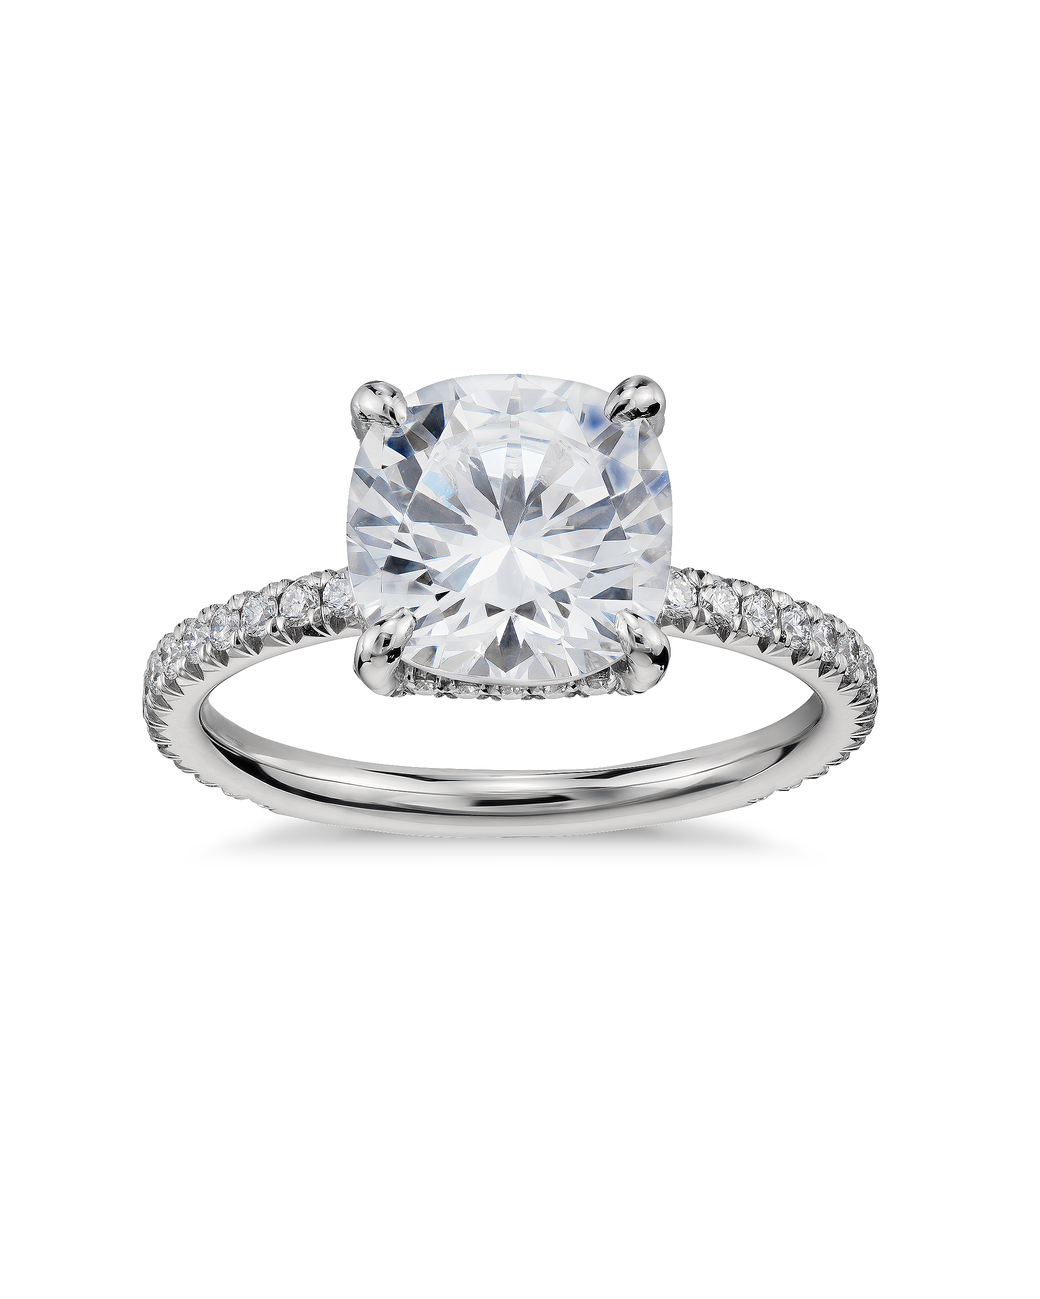 ritani engagement rings sparkle set real midweek style double blog french